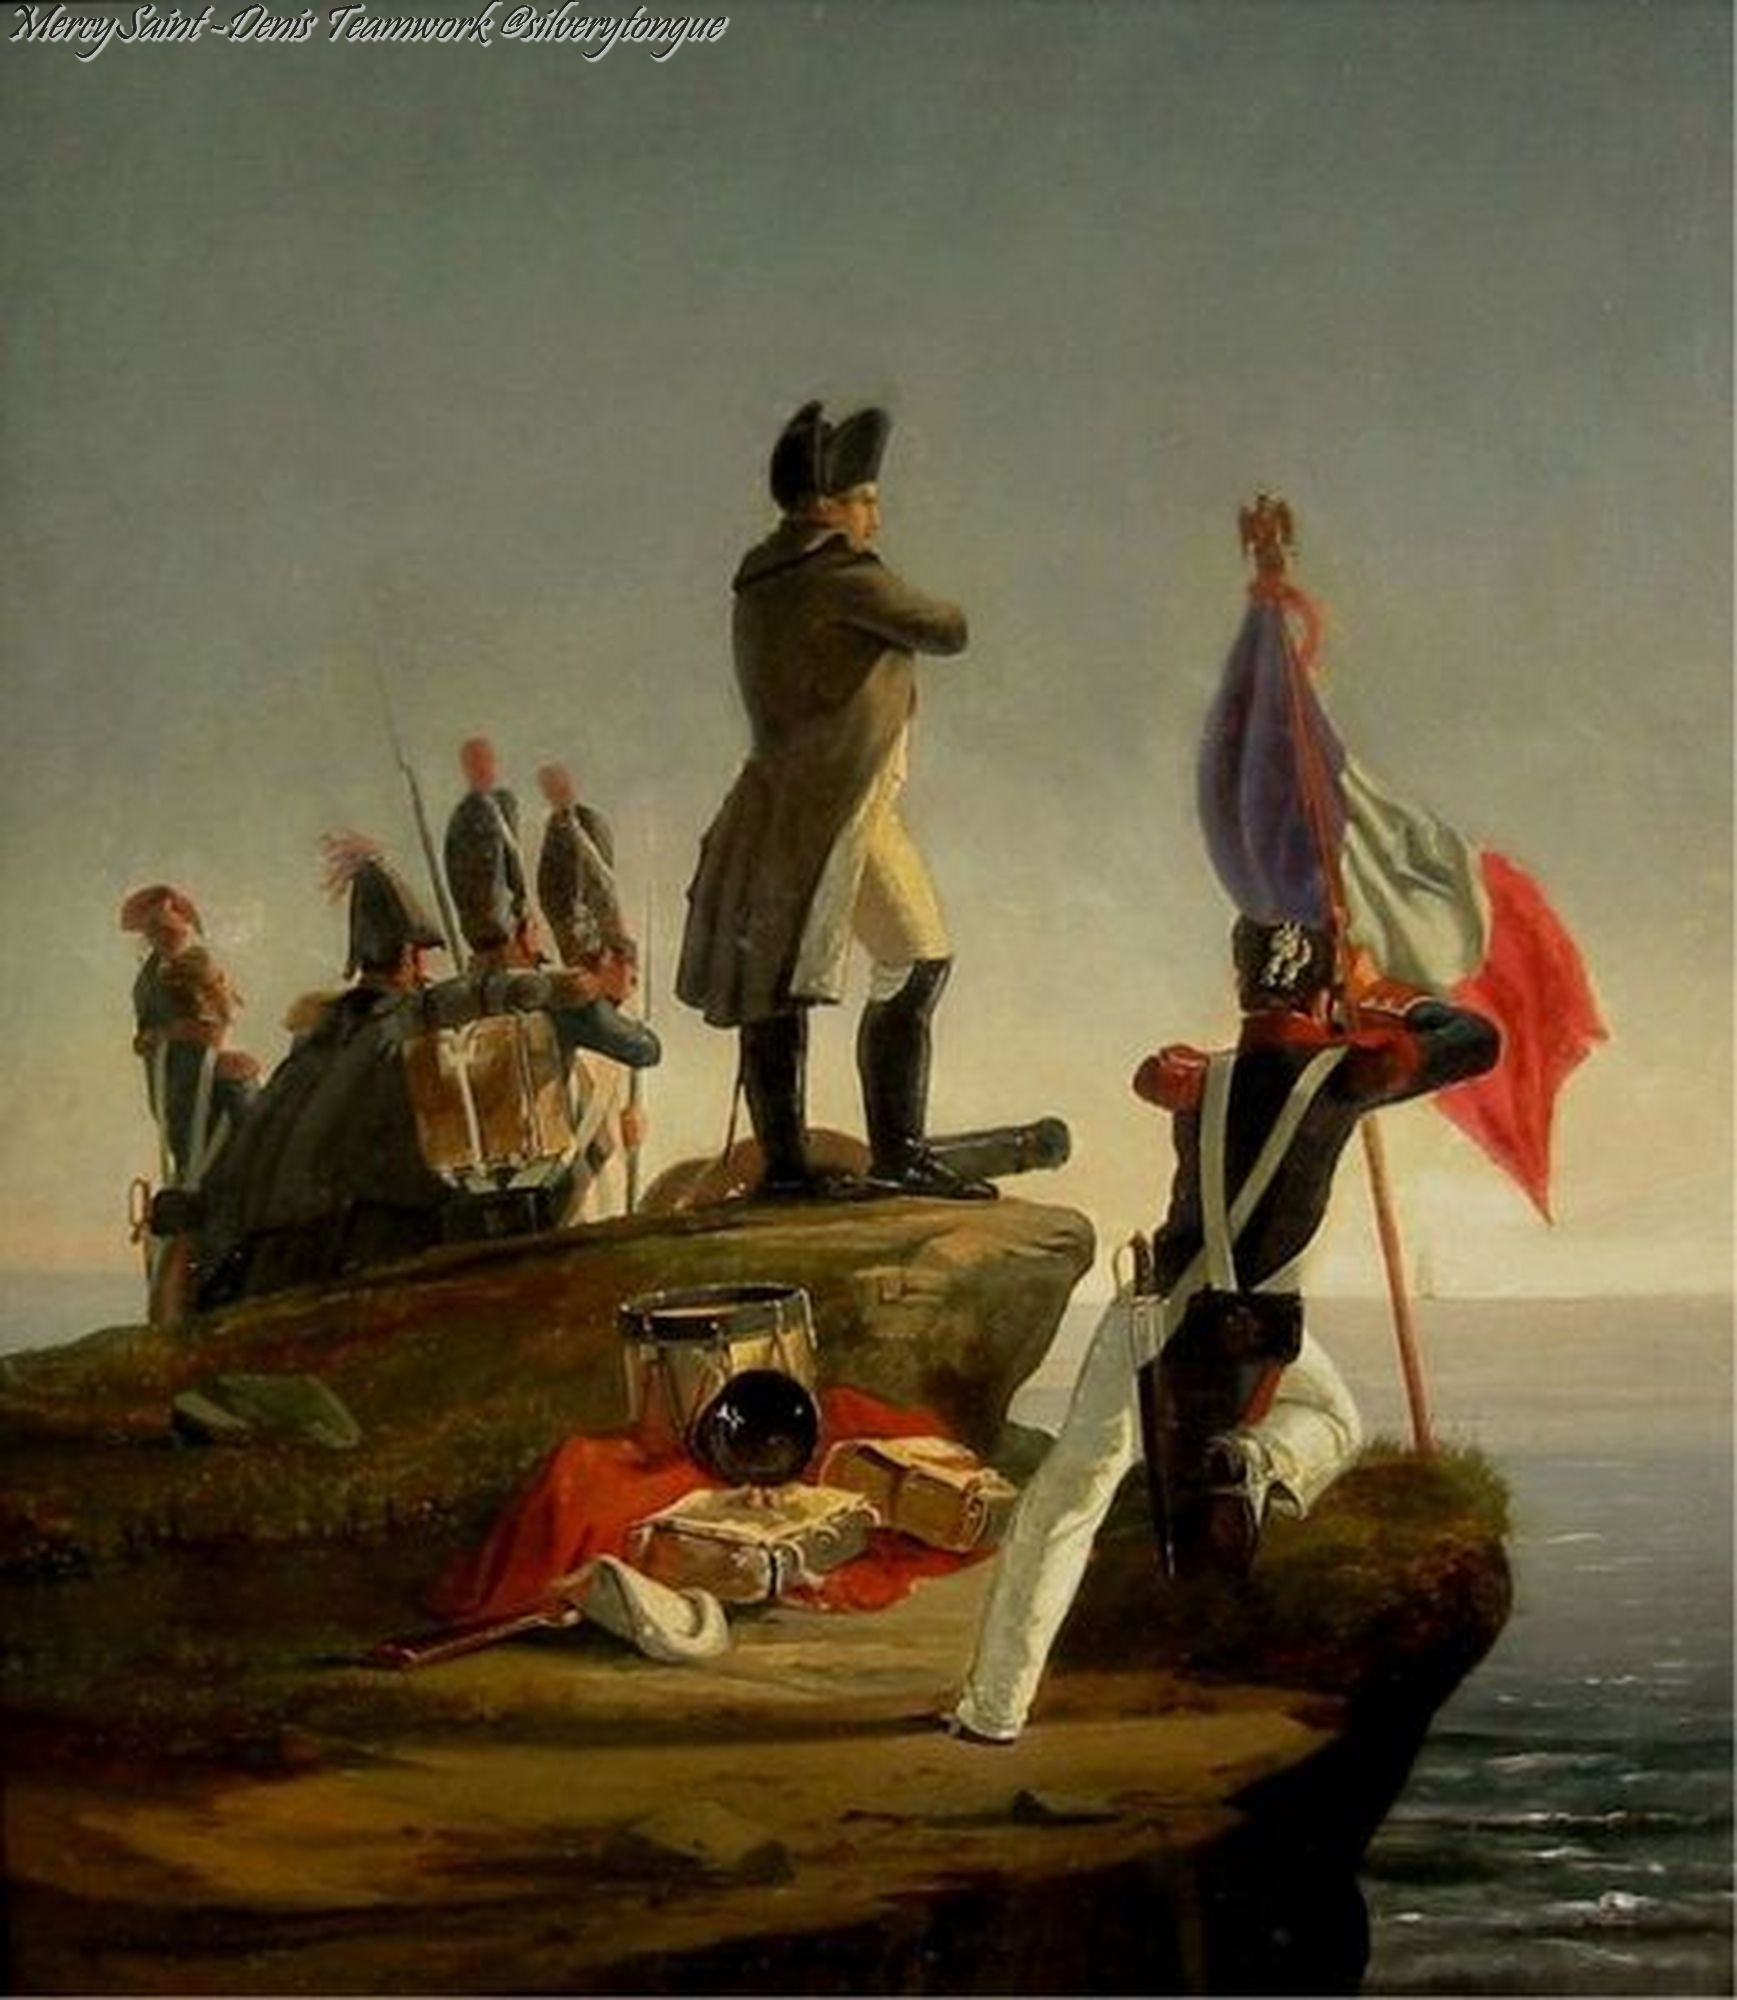 the legacy of napoleon bonaparte Pulling up the body would also reveal whether napoleon is missing his, uh, bonaparte if so, then dr lattimer could opt for a genetic authentication of his favorite objet trouvé continue reading.